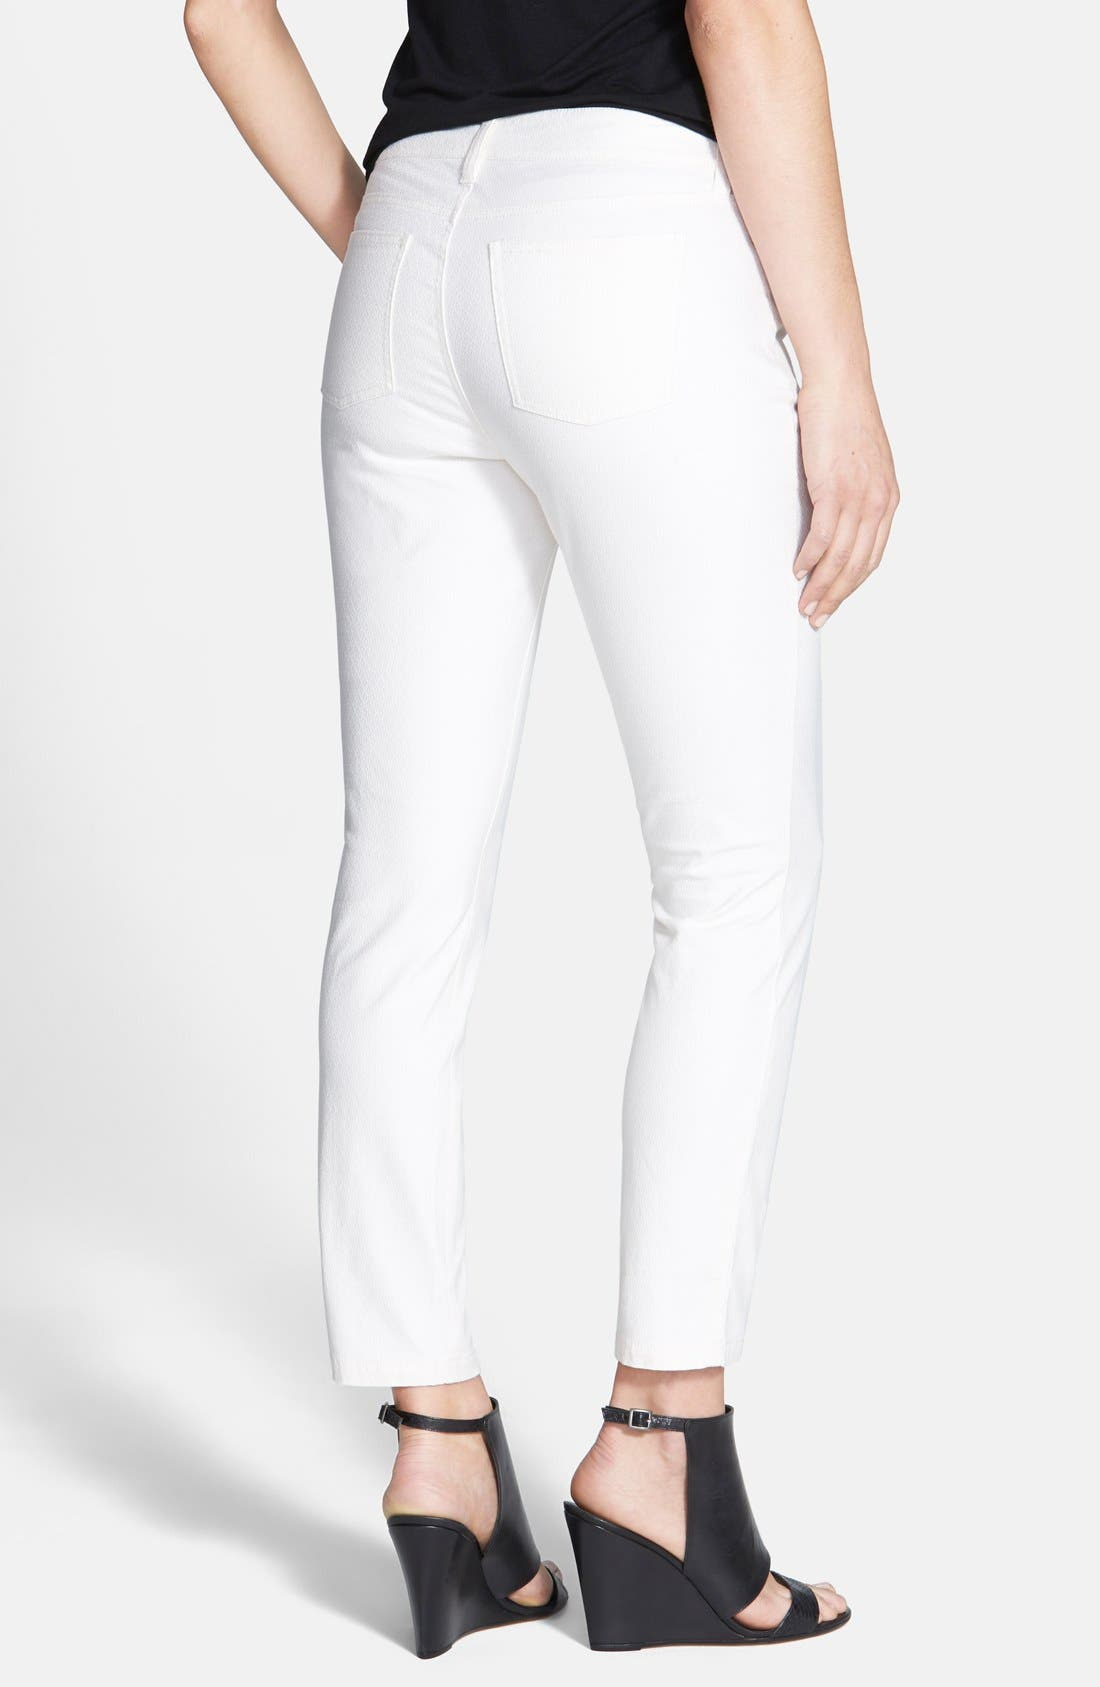 Alternate Image 2  - Eileen Fisher Ankle Skinny Jeans (Soft White) (Petite)